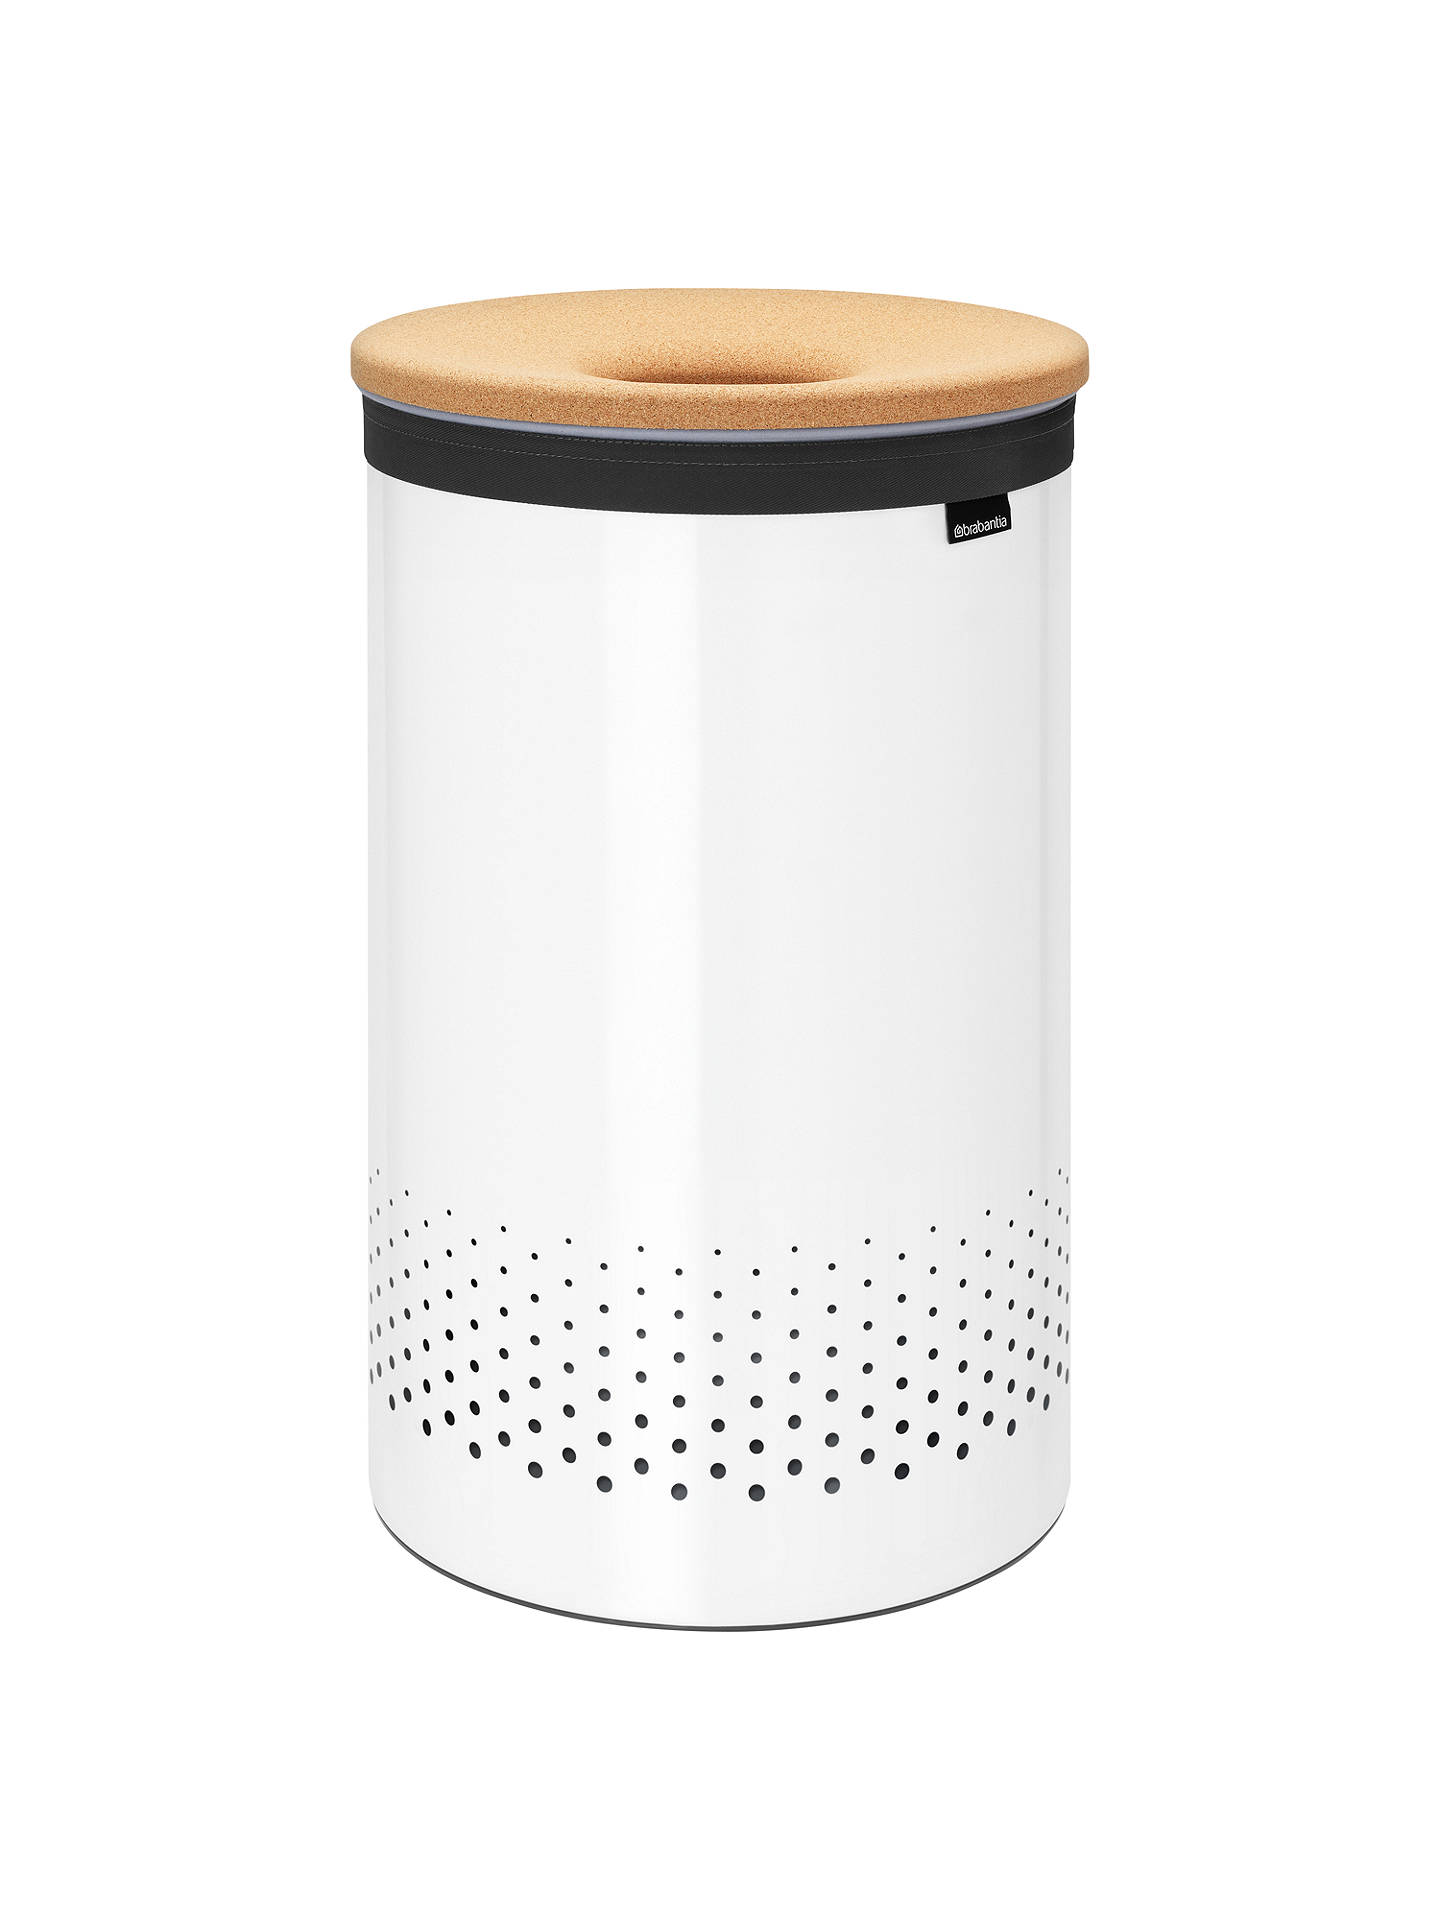 BuyBrabantia Cork Lid Laundry Bin, White, 60L Online at johnlewis.com